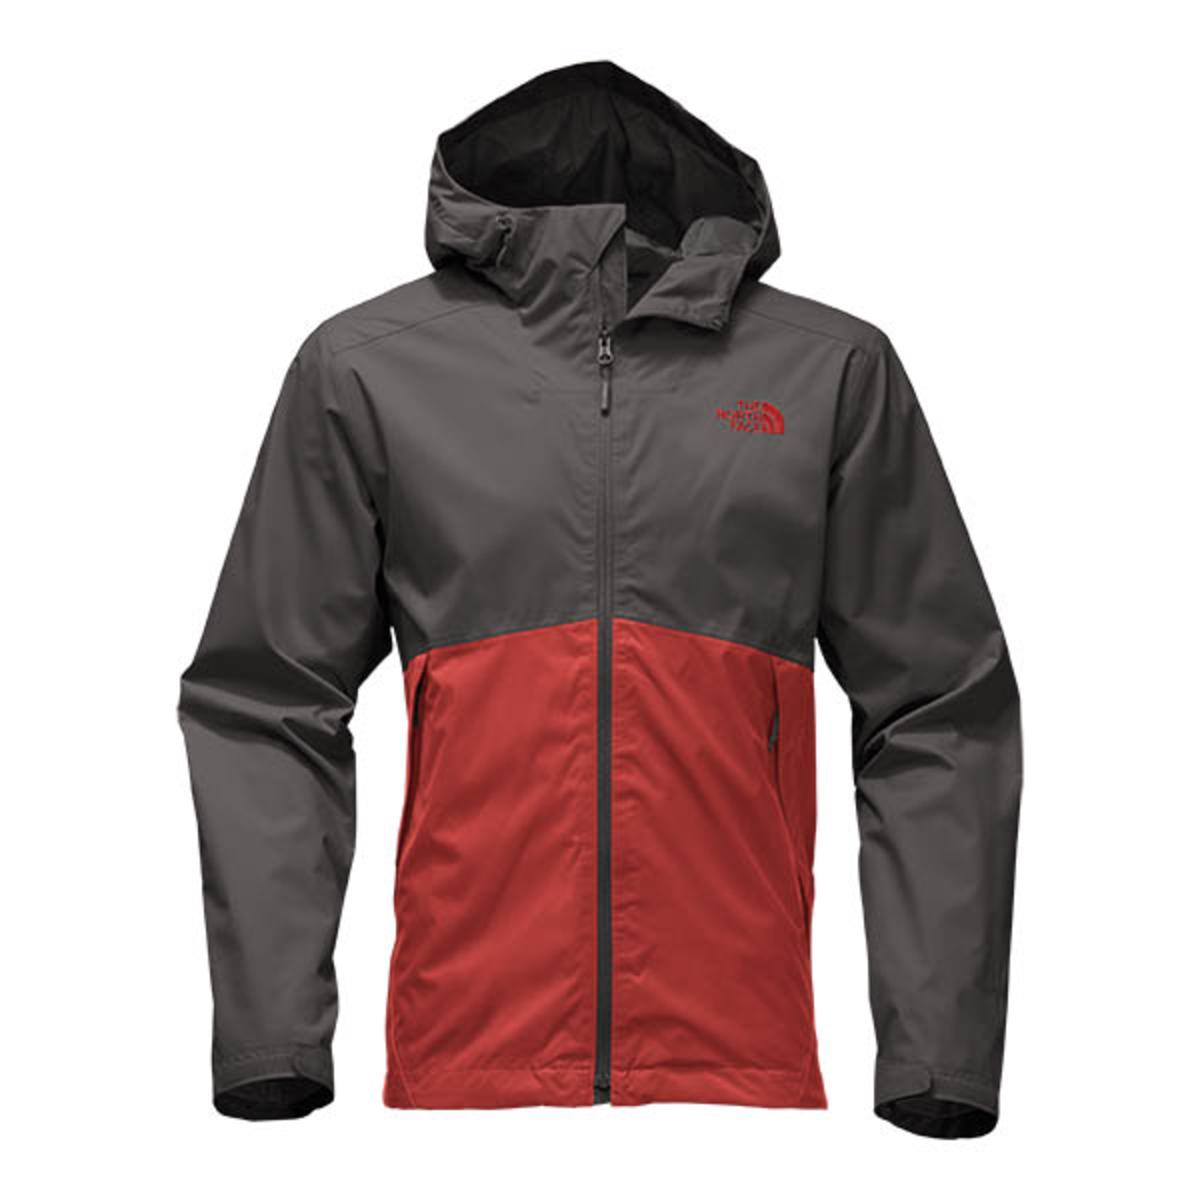 7001854ebdb The North Face Men s Millerton Jacket - The Warming Store